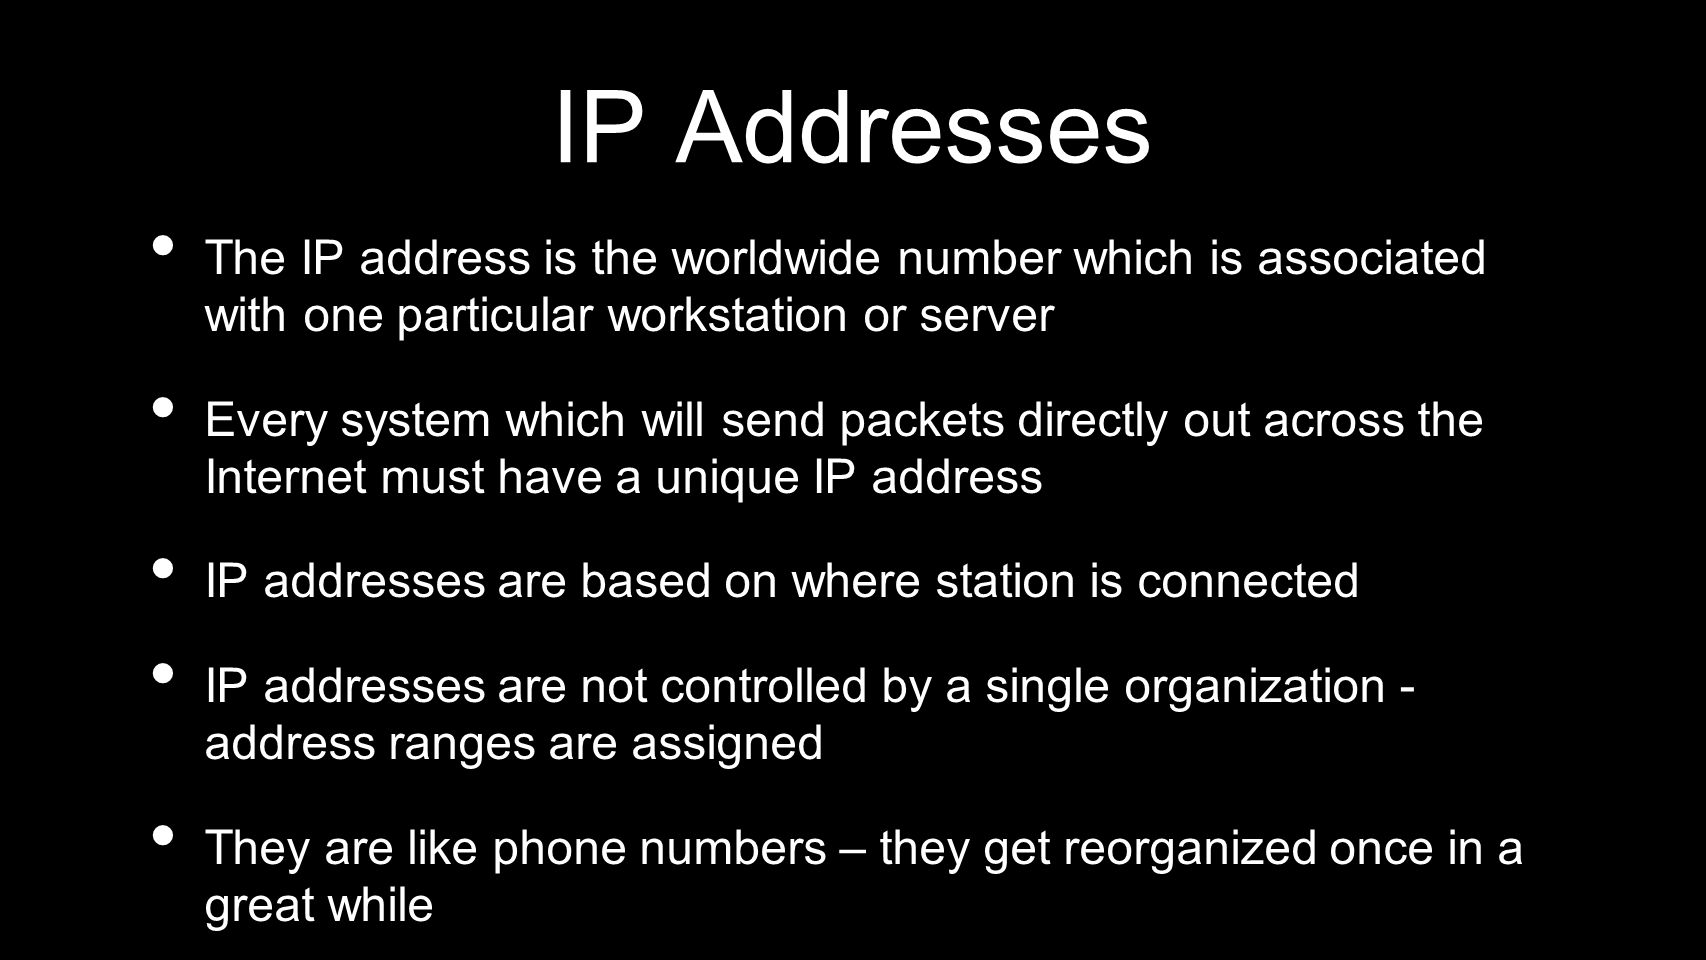 IP Addresses The IP address is the worldwide number which is associated with one particular workstation or server.